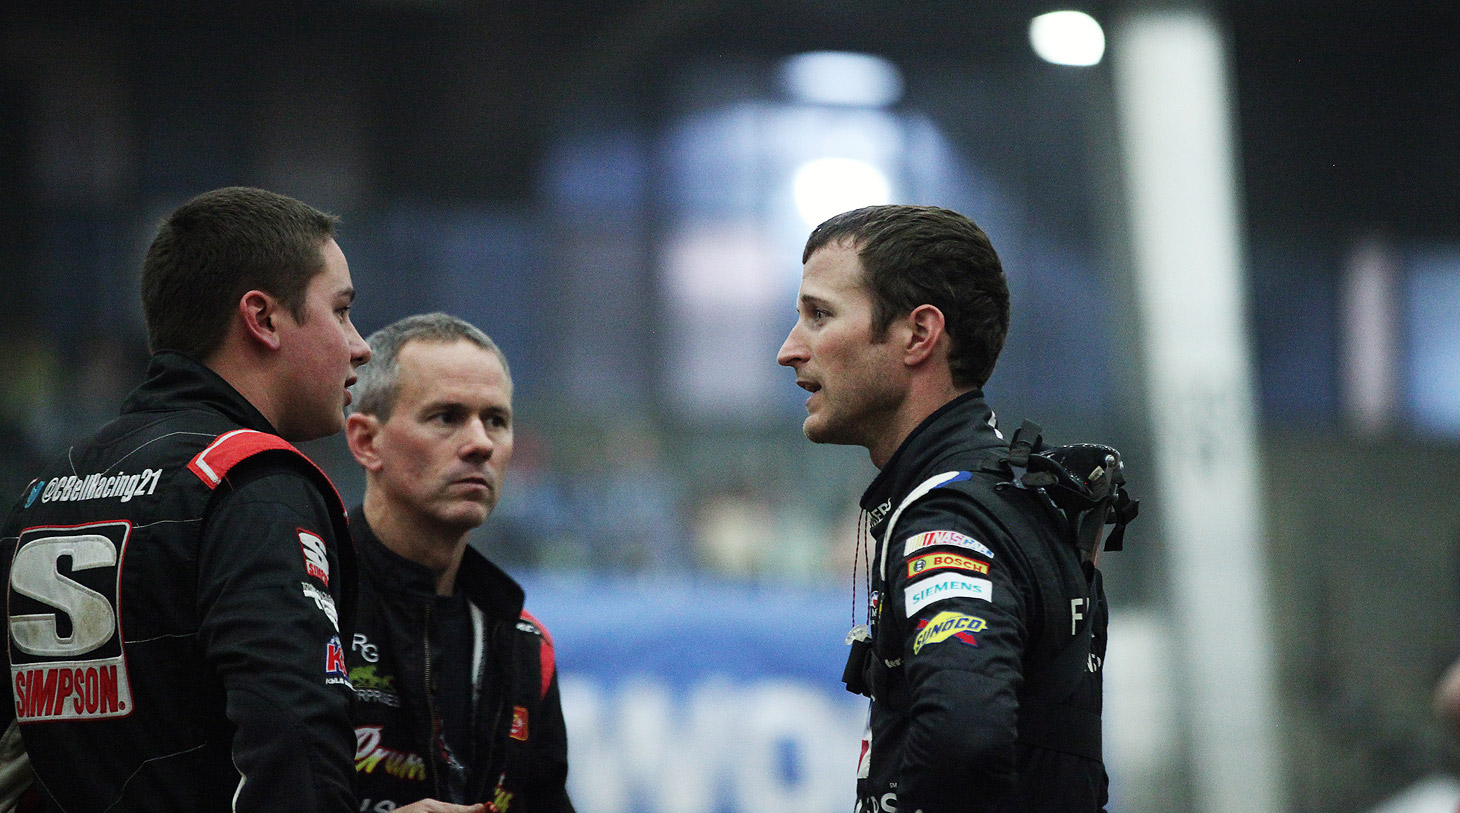 Christopher Bell, Jerry Coons Jr and Kasey Kahne infield at The 2016 Chili Bowl. (Jeffrey Turford / TDP)